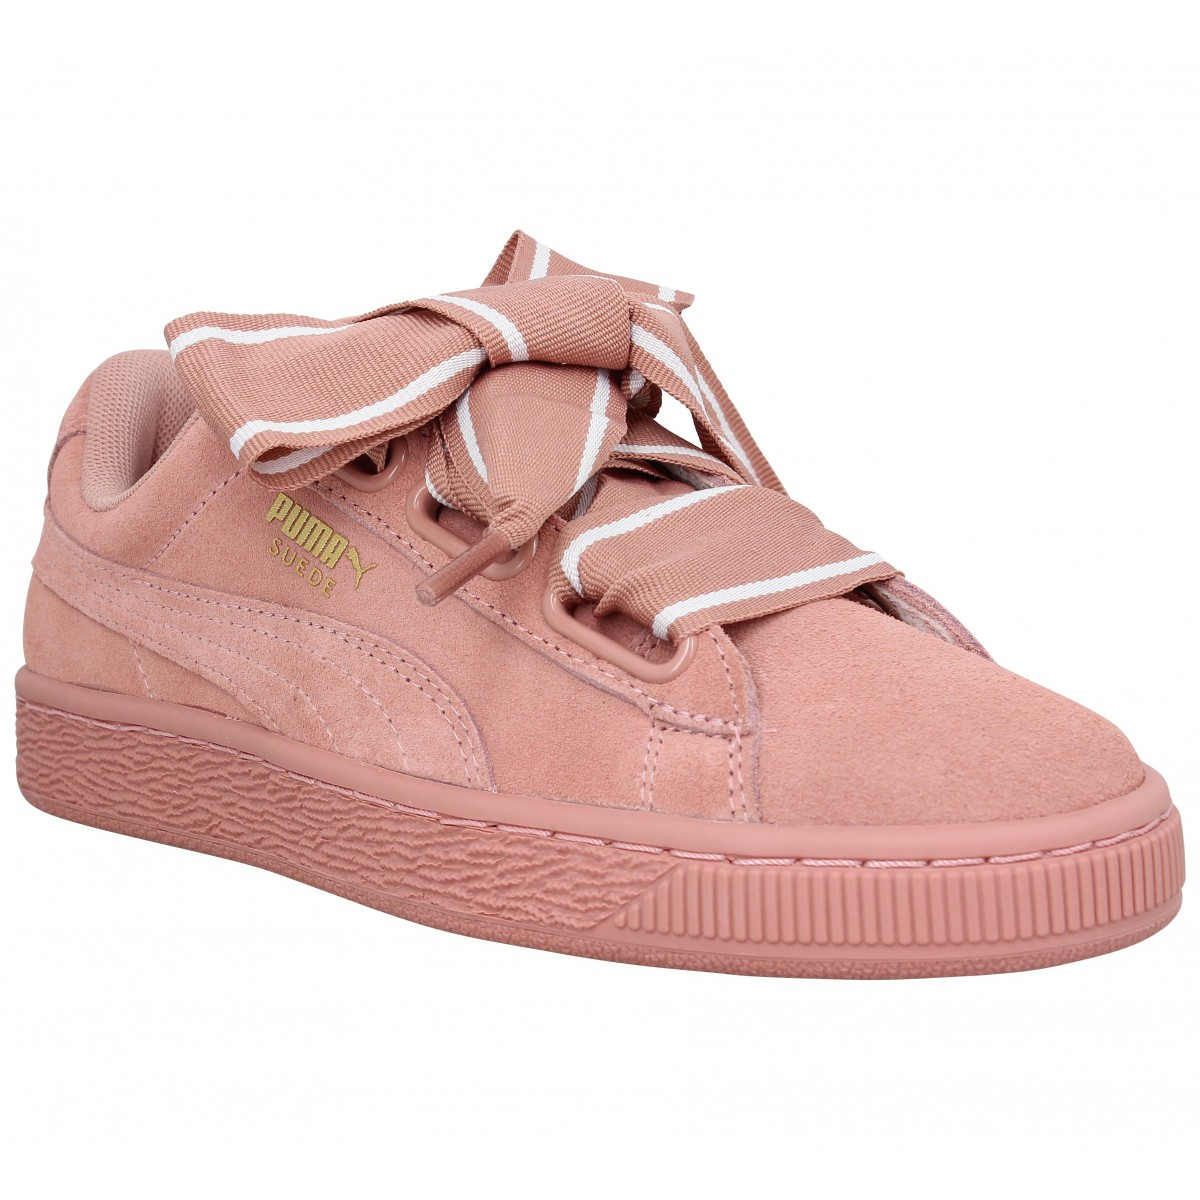 Baskets PUMA Suede Heart Satin velours Femme Cameo